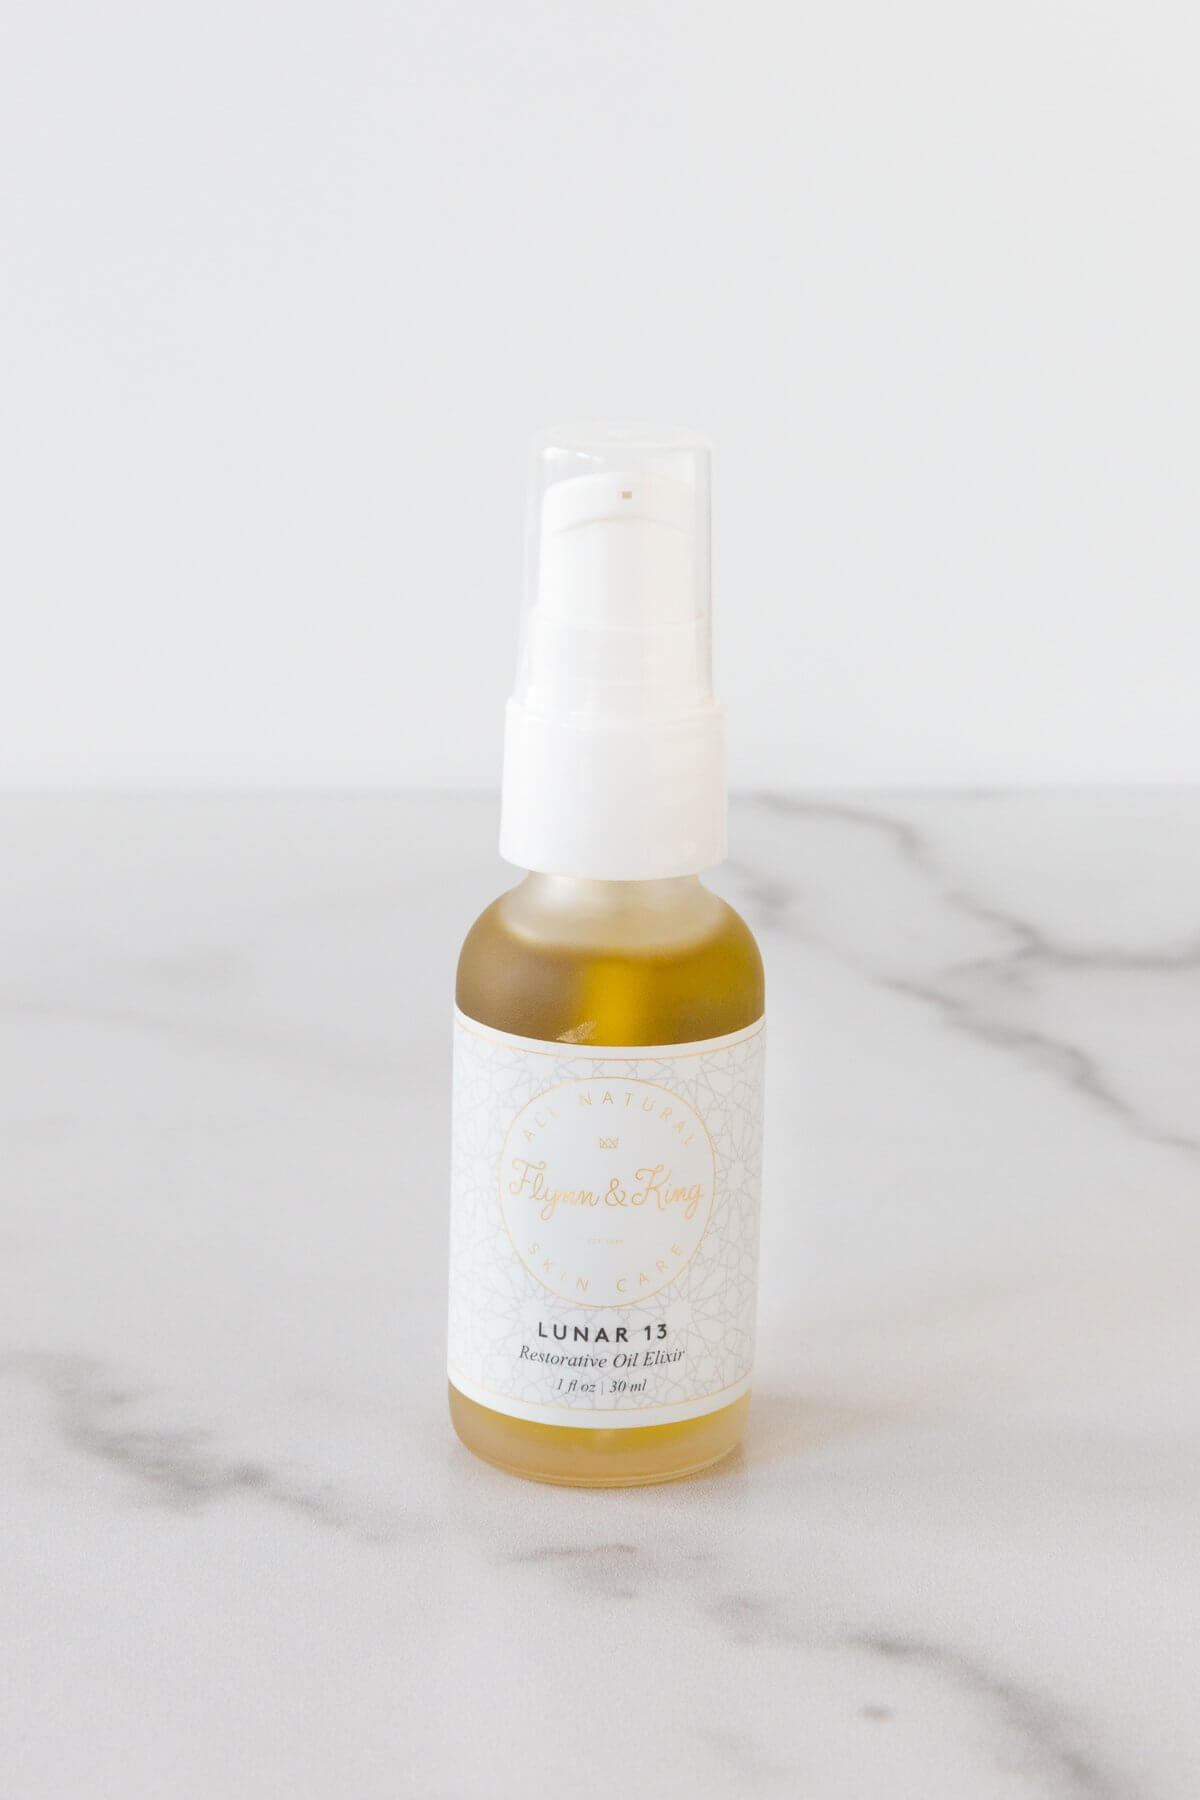 Flynn & King Lunar 13 Restorative Oil Elixir